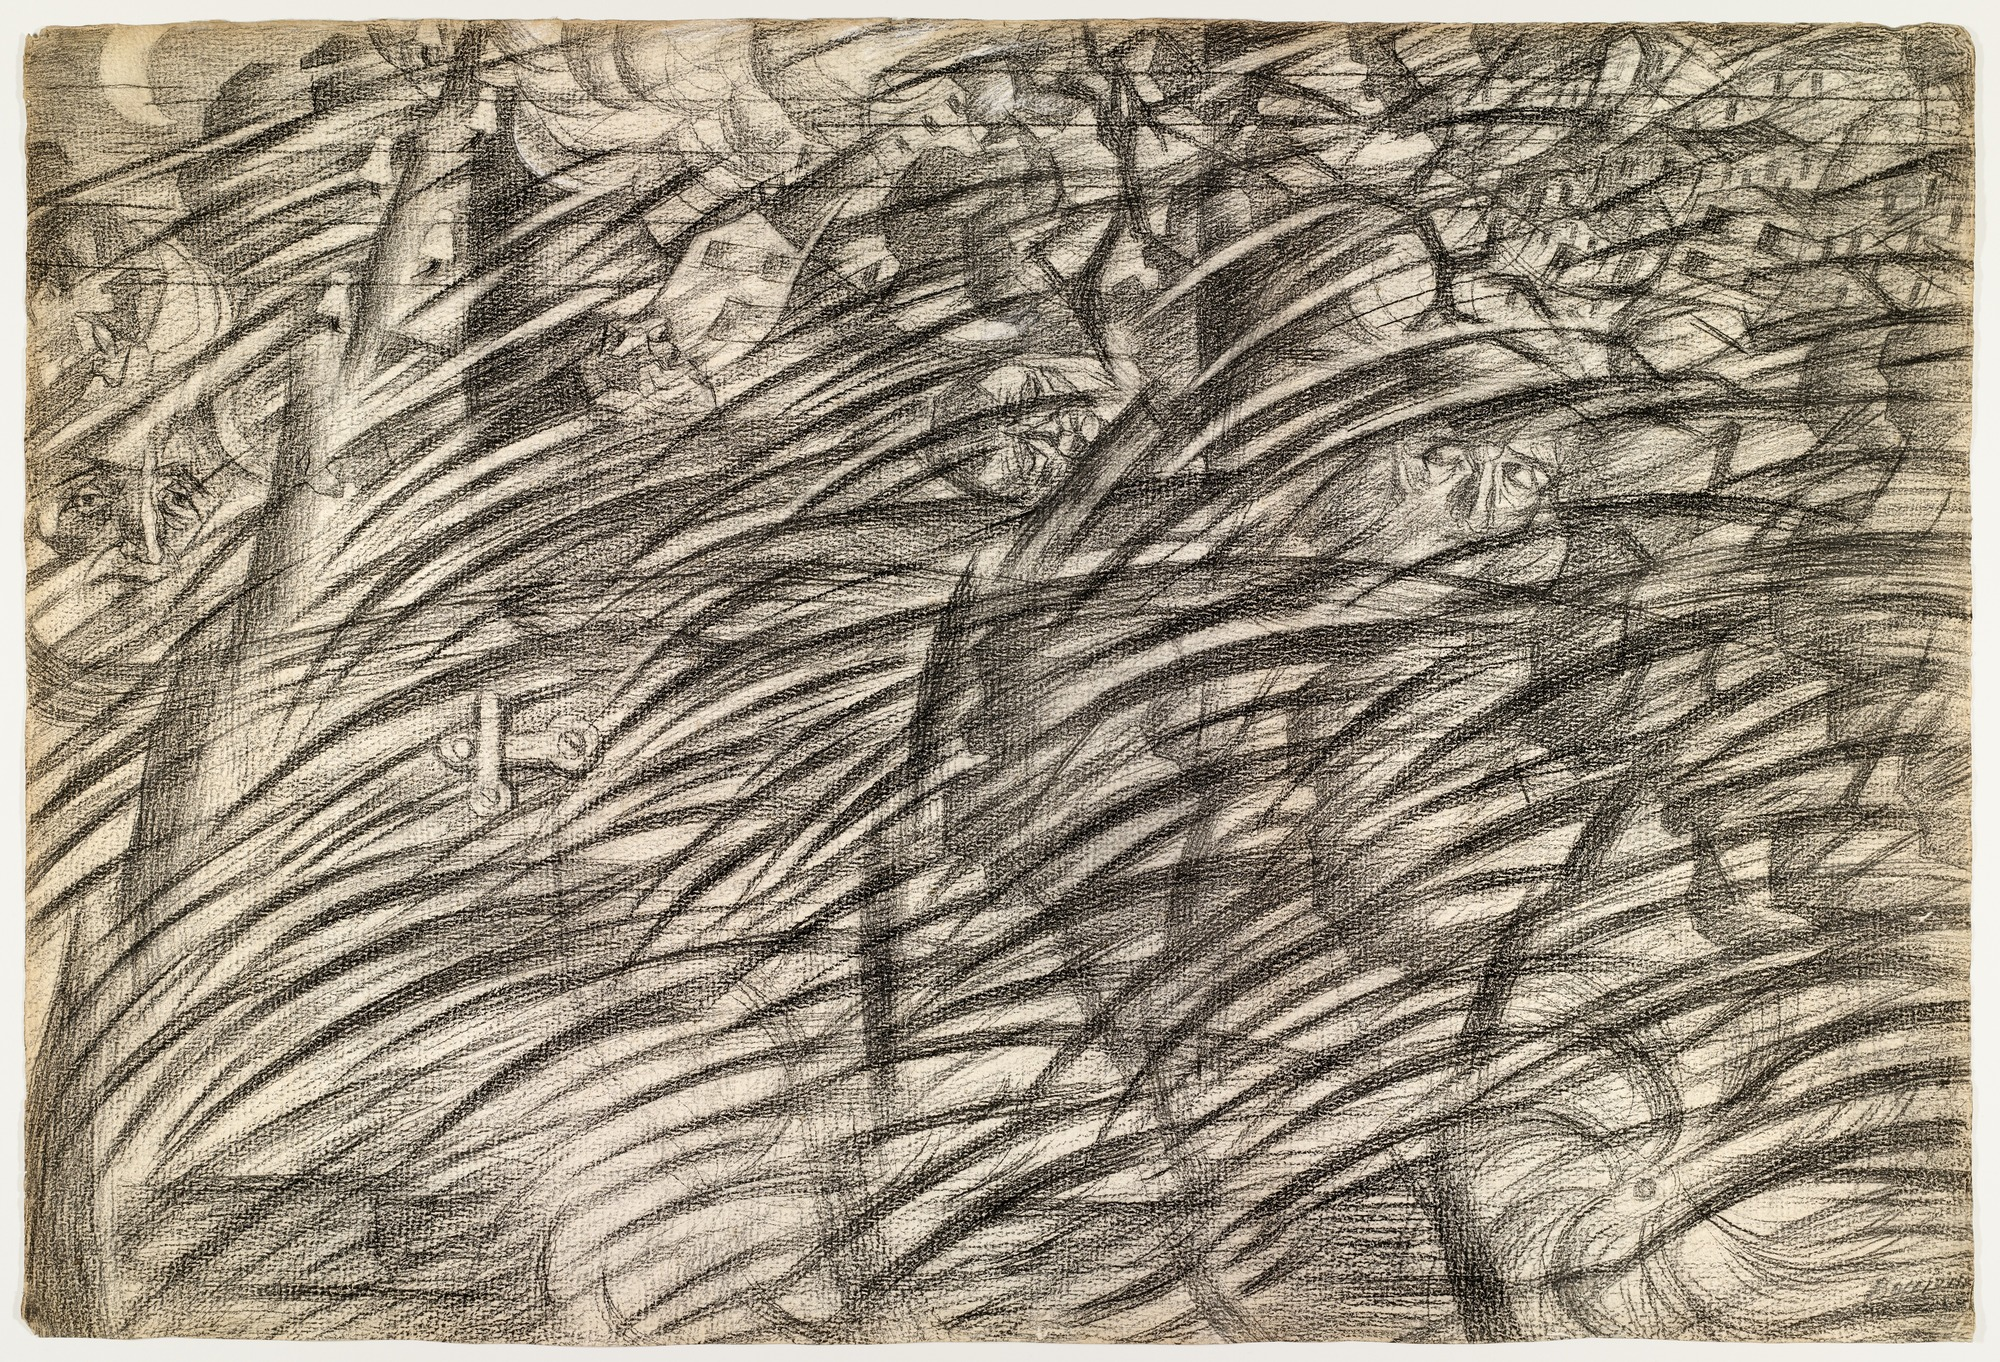 Sketch for States of Mind: Those Who Go, 1911 — Umberto Boccioni